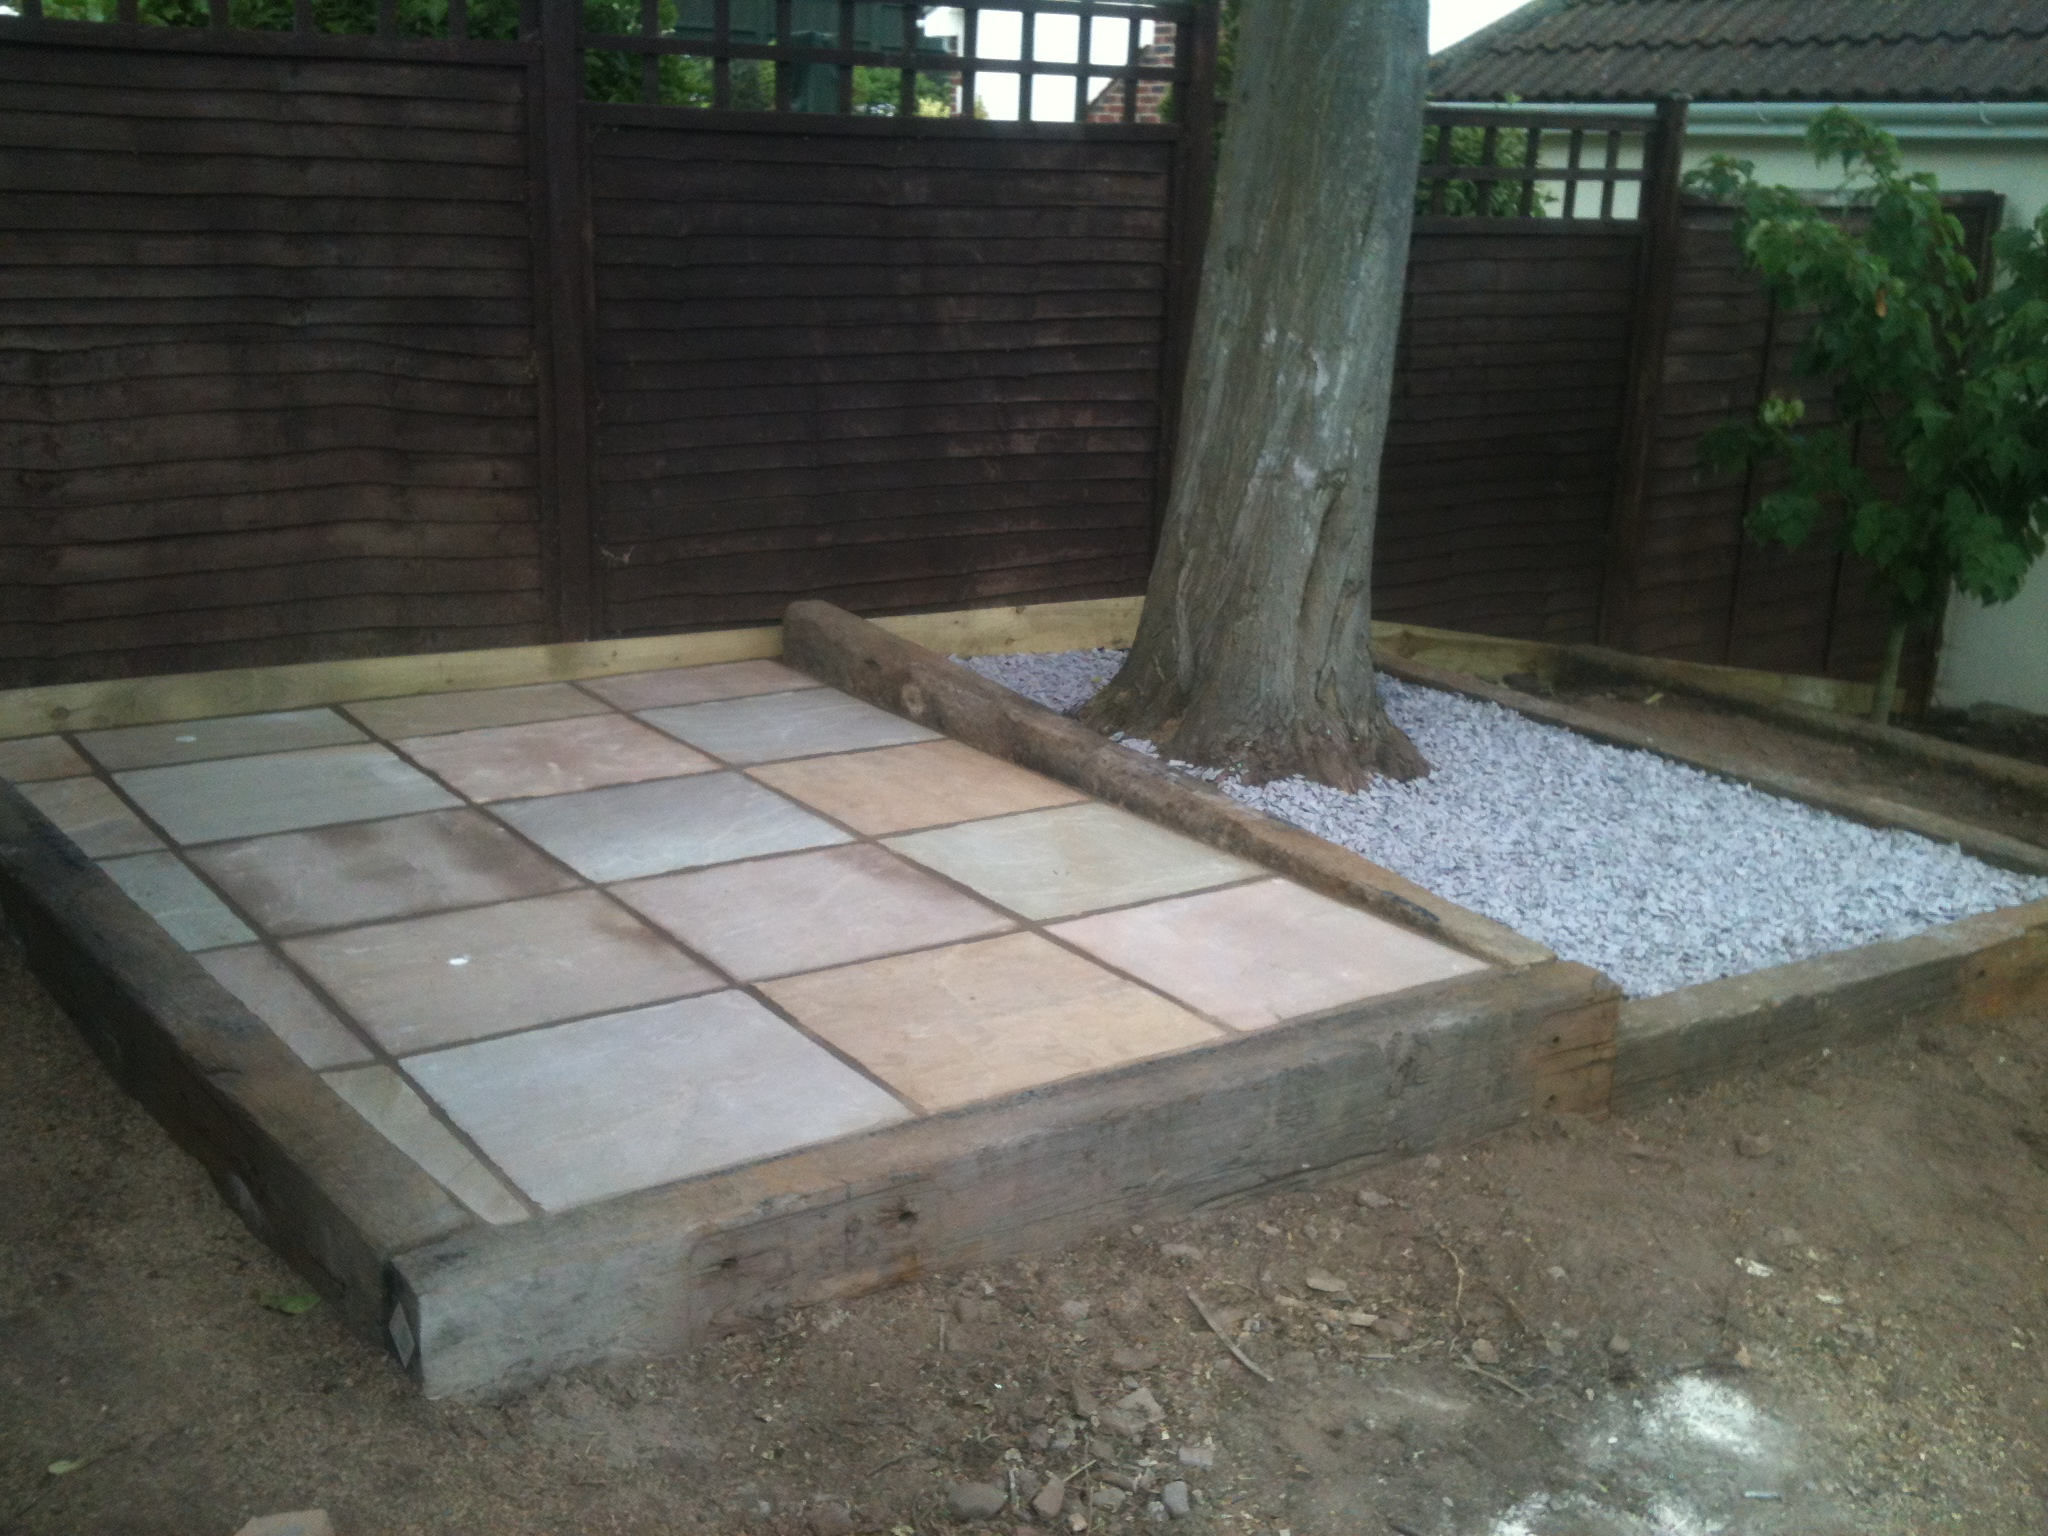 railway sleepers and patio area